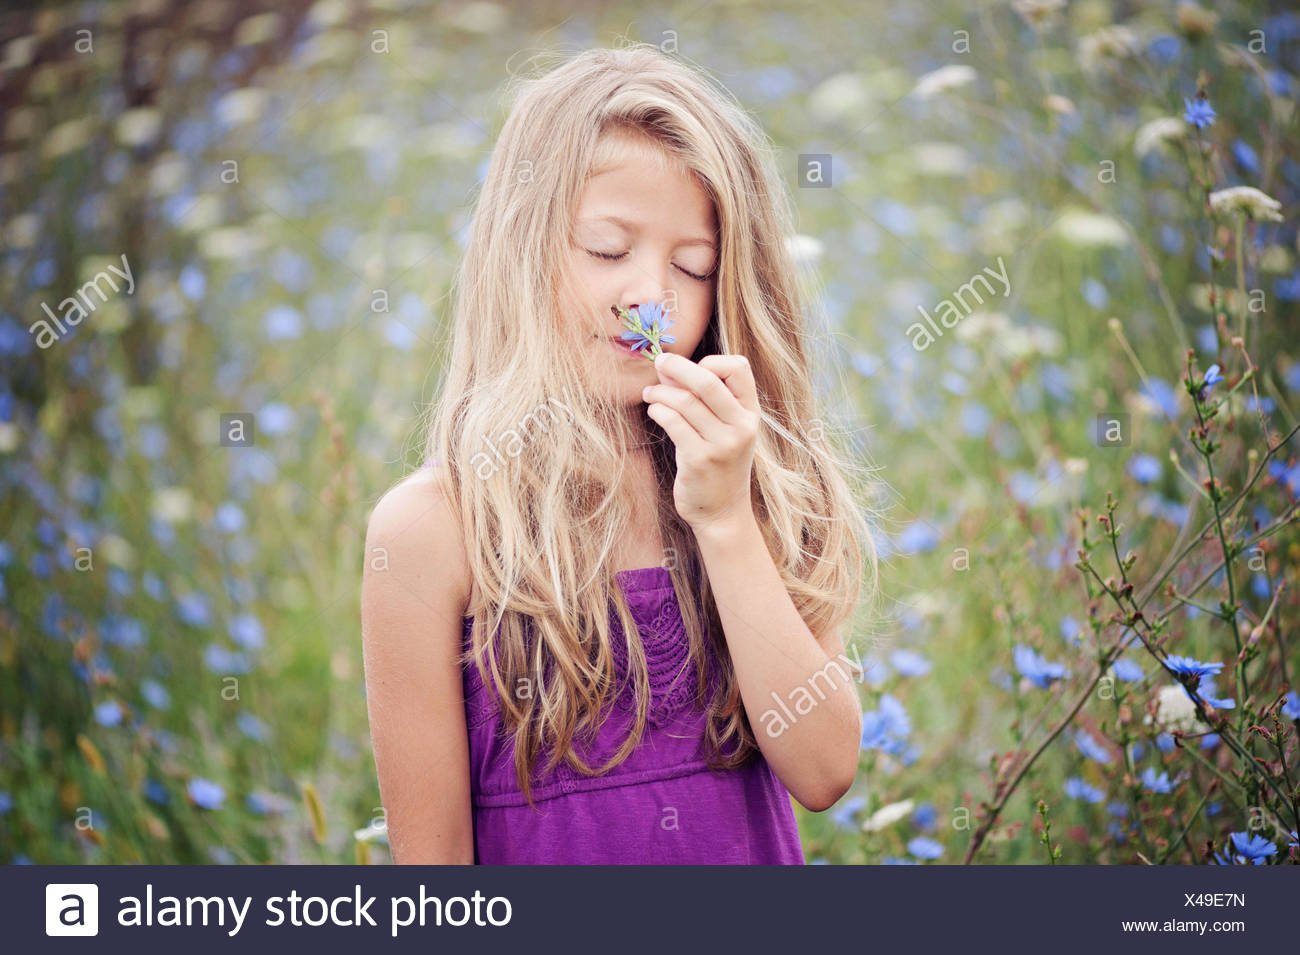 Portrait of young girl smelling flower (6-7) in chicory field - Stock Image